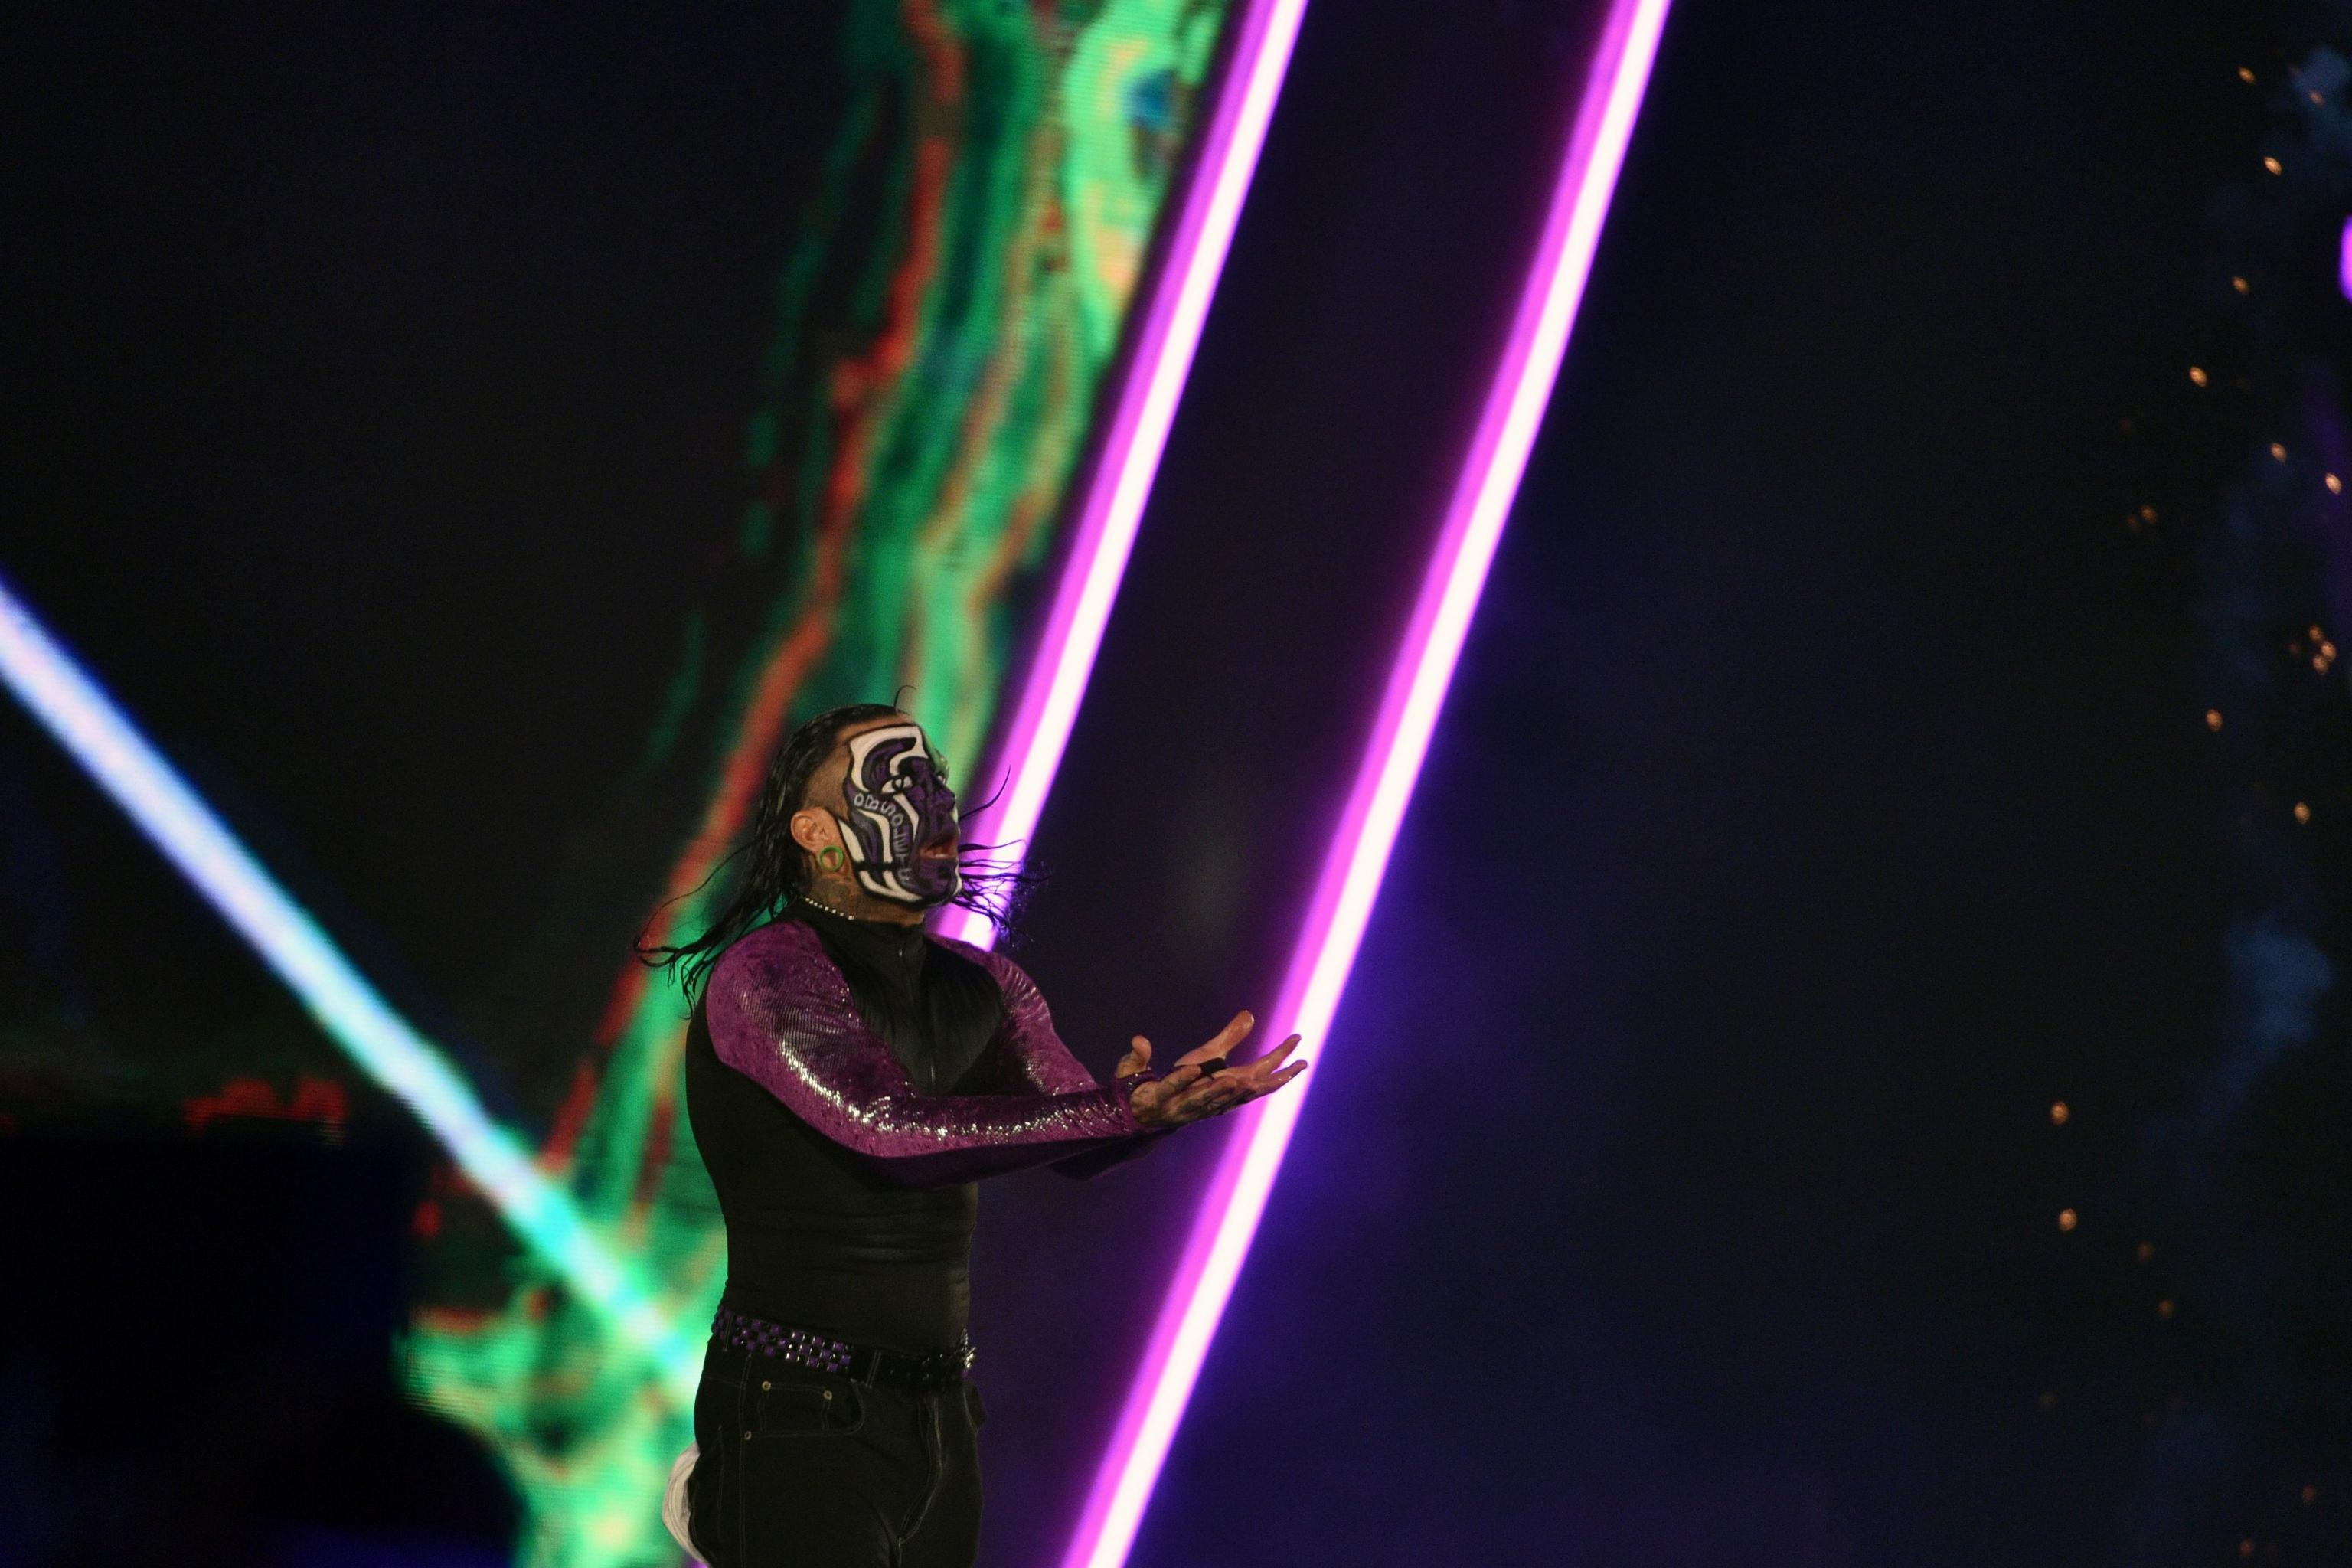 Jeff hardy another me